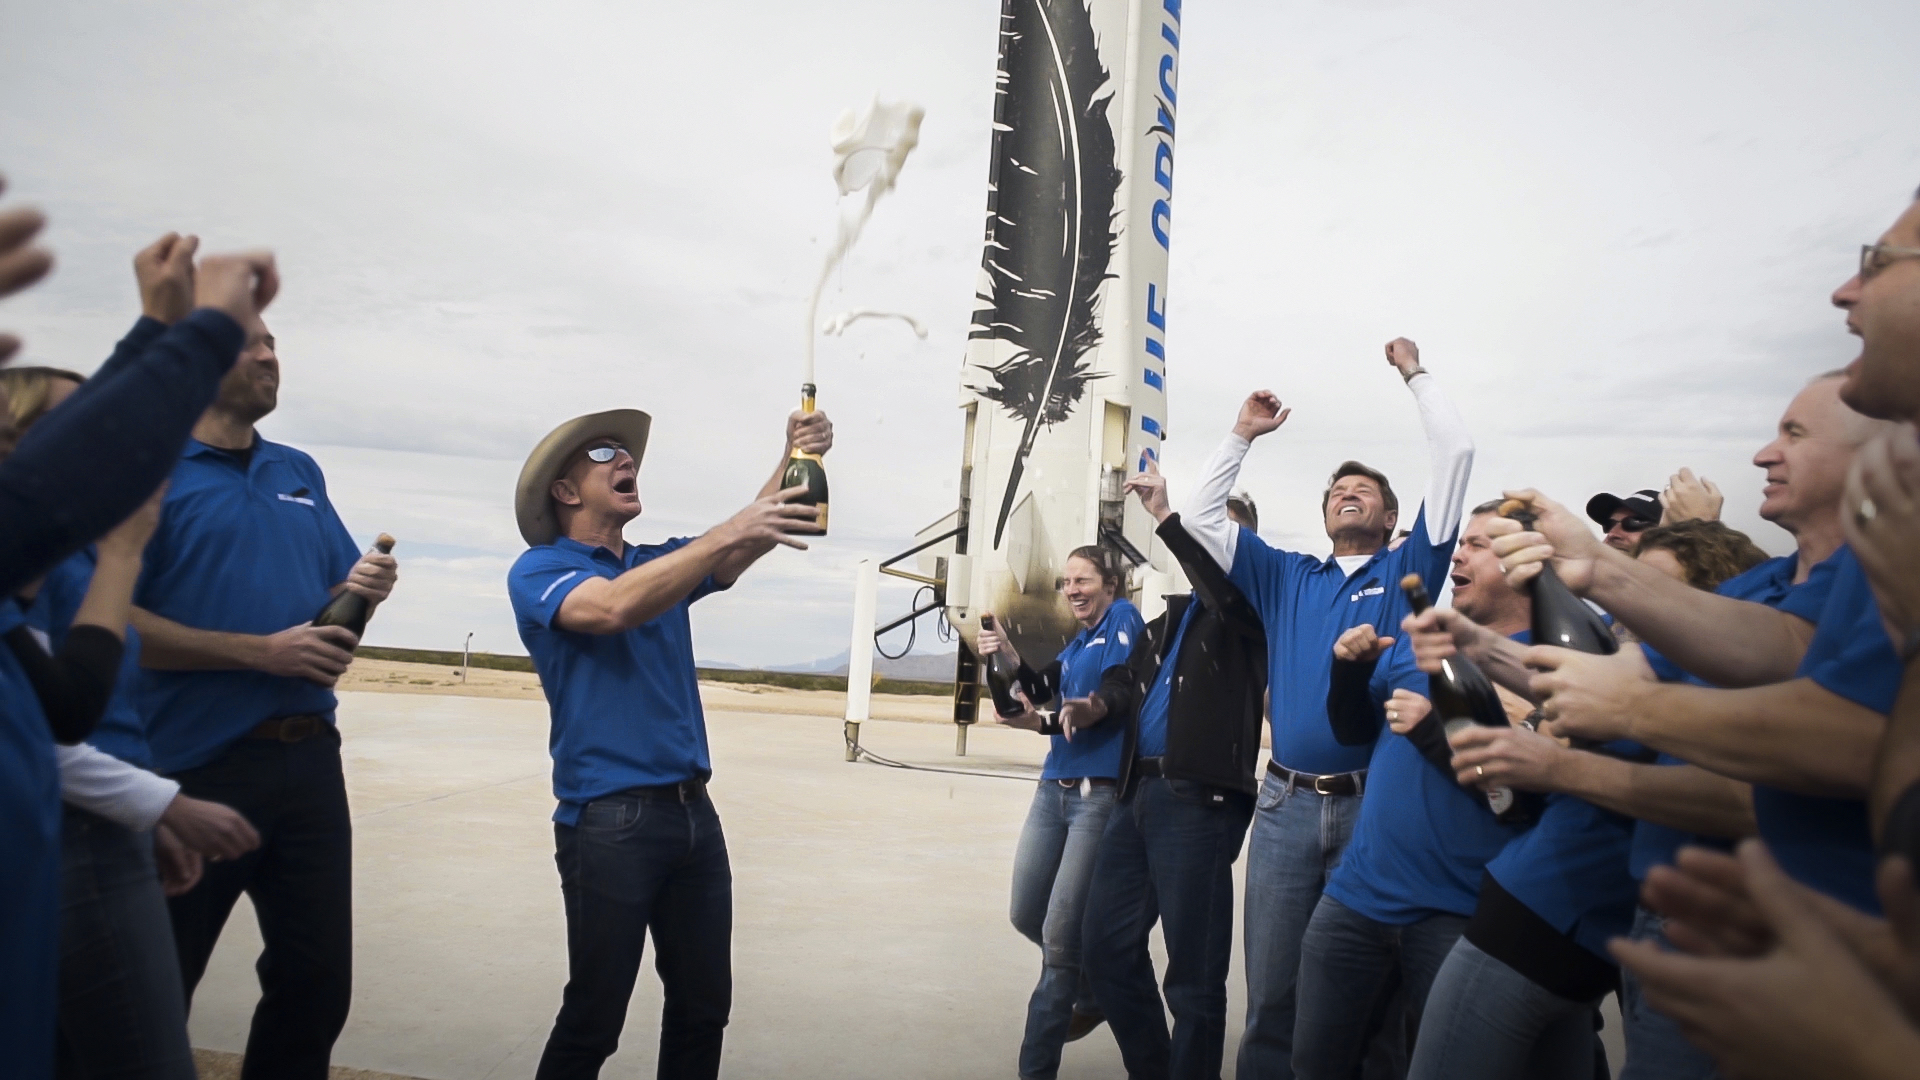 Jeff Bezos Celebrates Blue Origin Test Flight